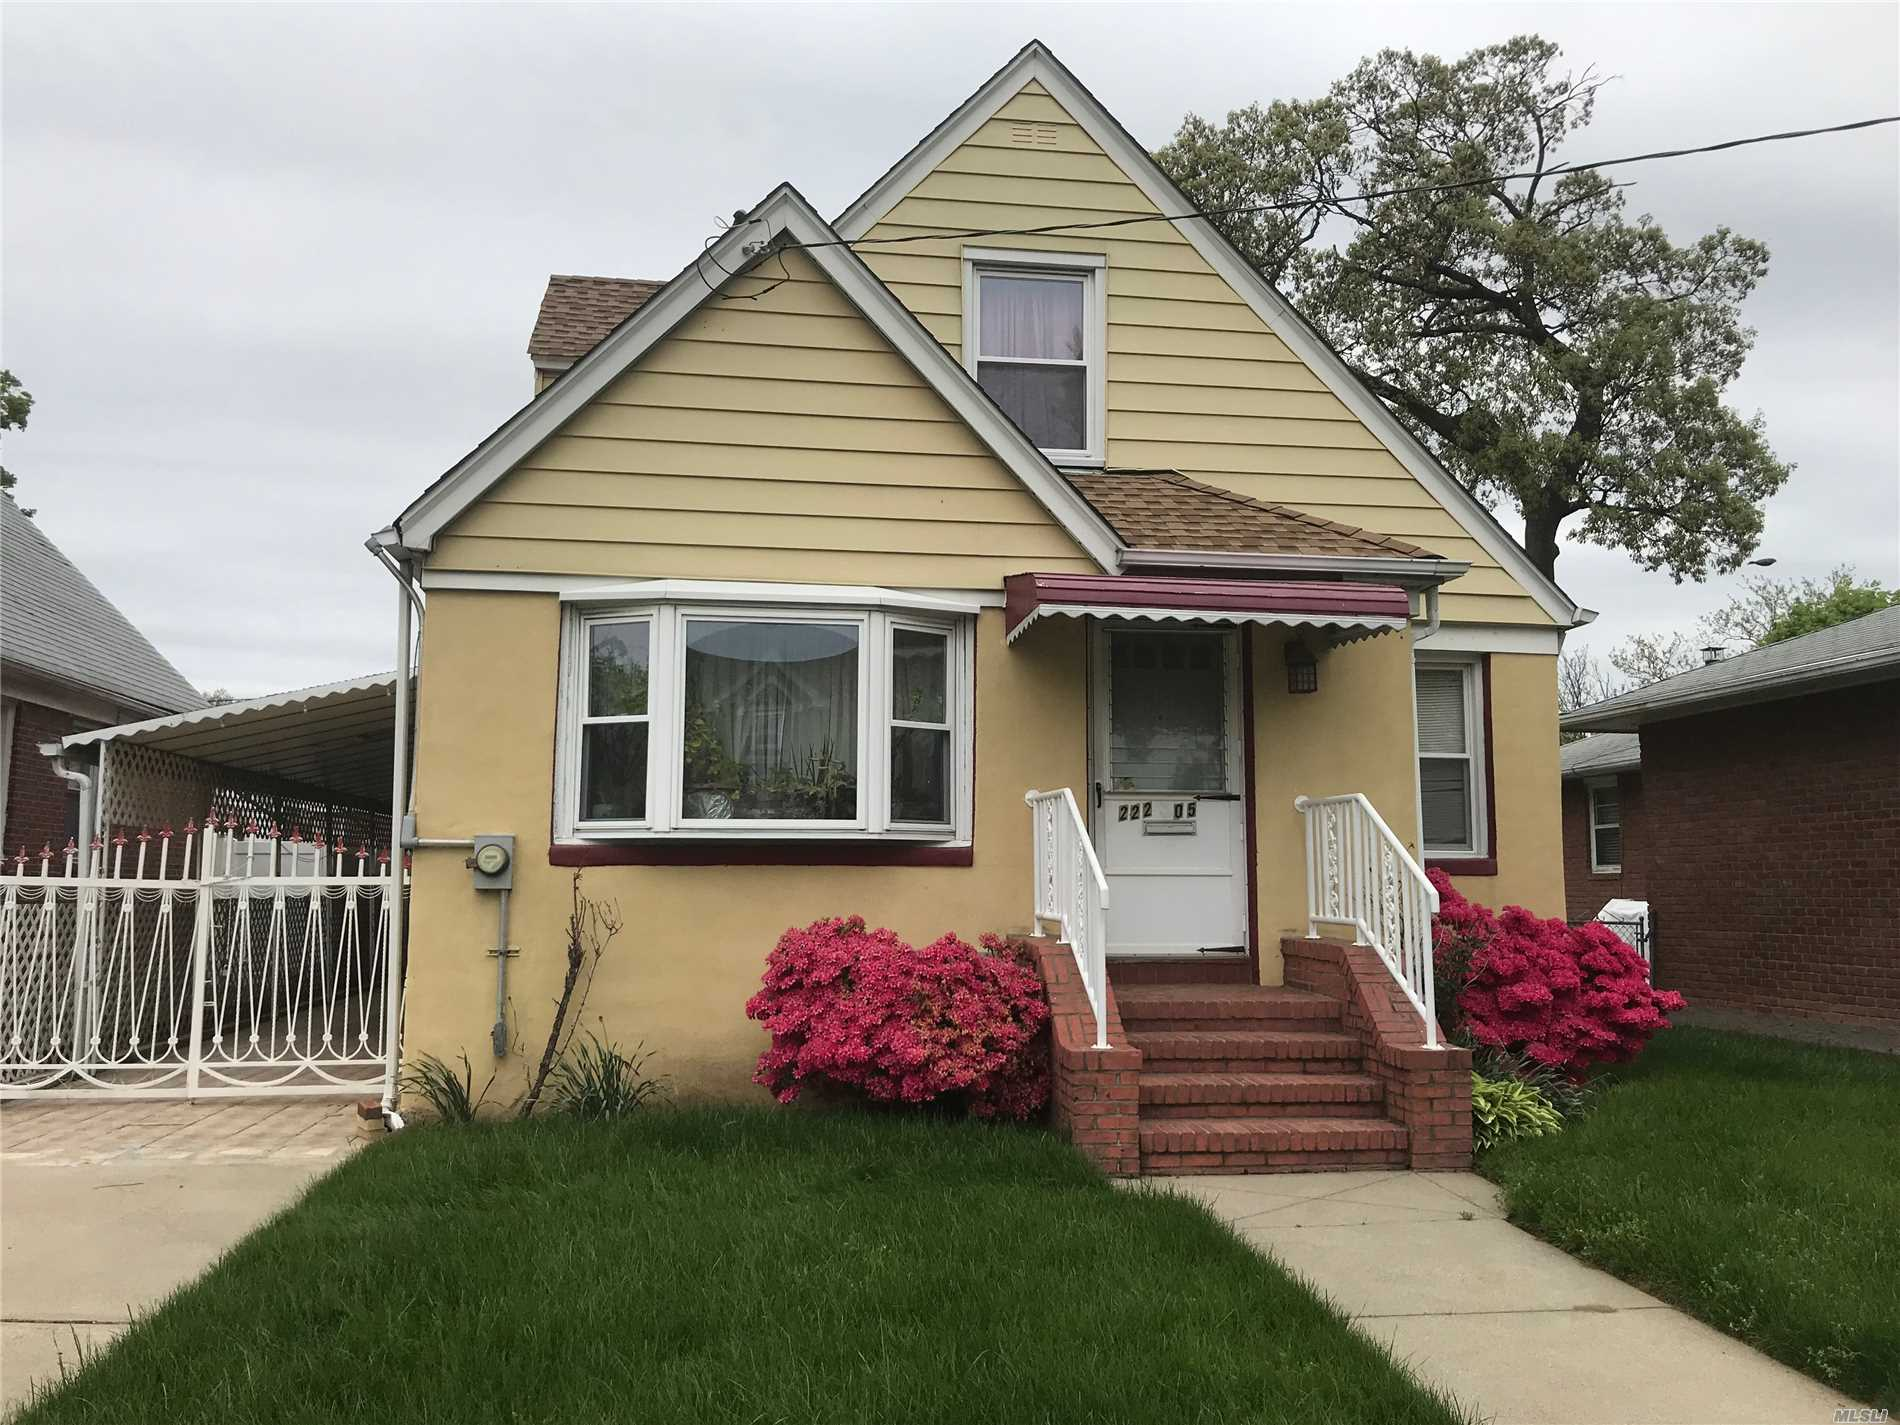 Charming Cape On A Dead End Street On A 40X100 Lot With Great Proximity To All. Oversized Garage, Long Driveway And Great Curb Appeal. Updated Gas Heat, HW, And Electric. Gleaming Hardwood Floors And Much More....